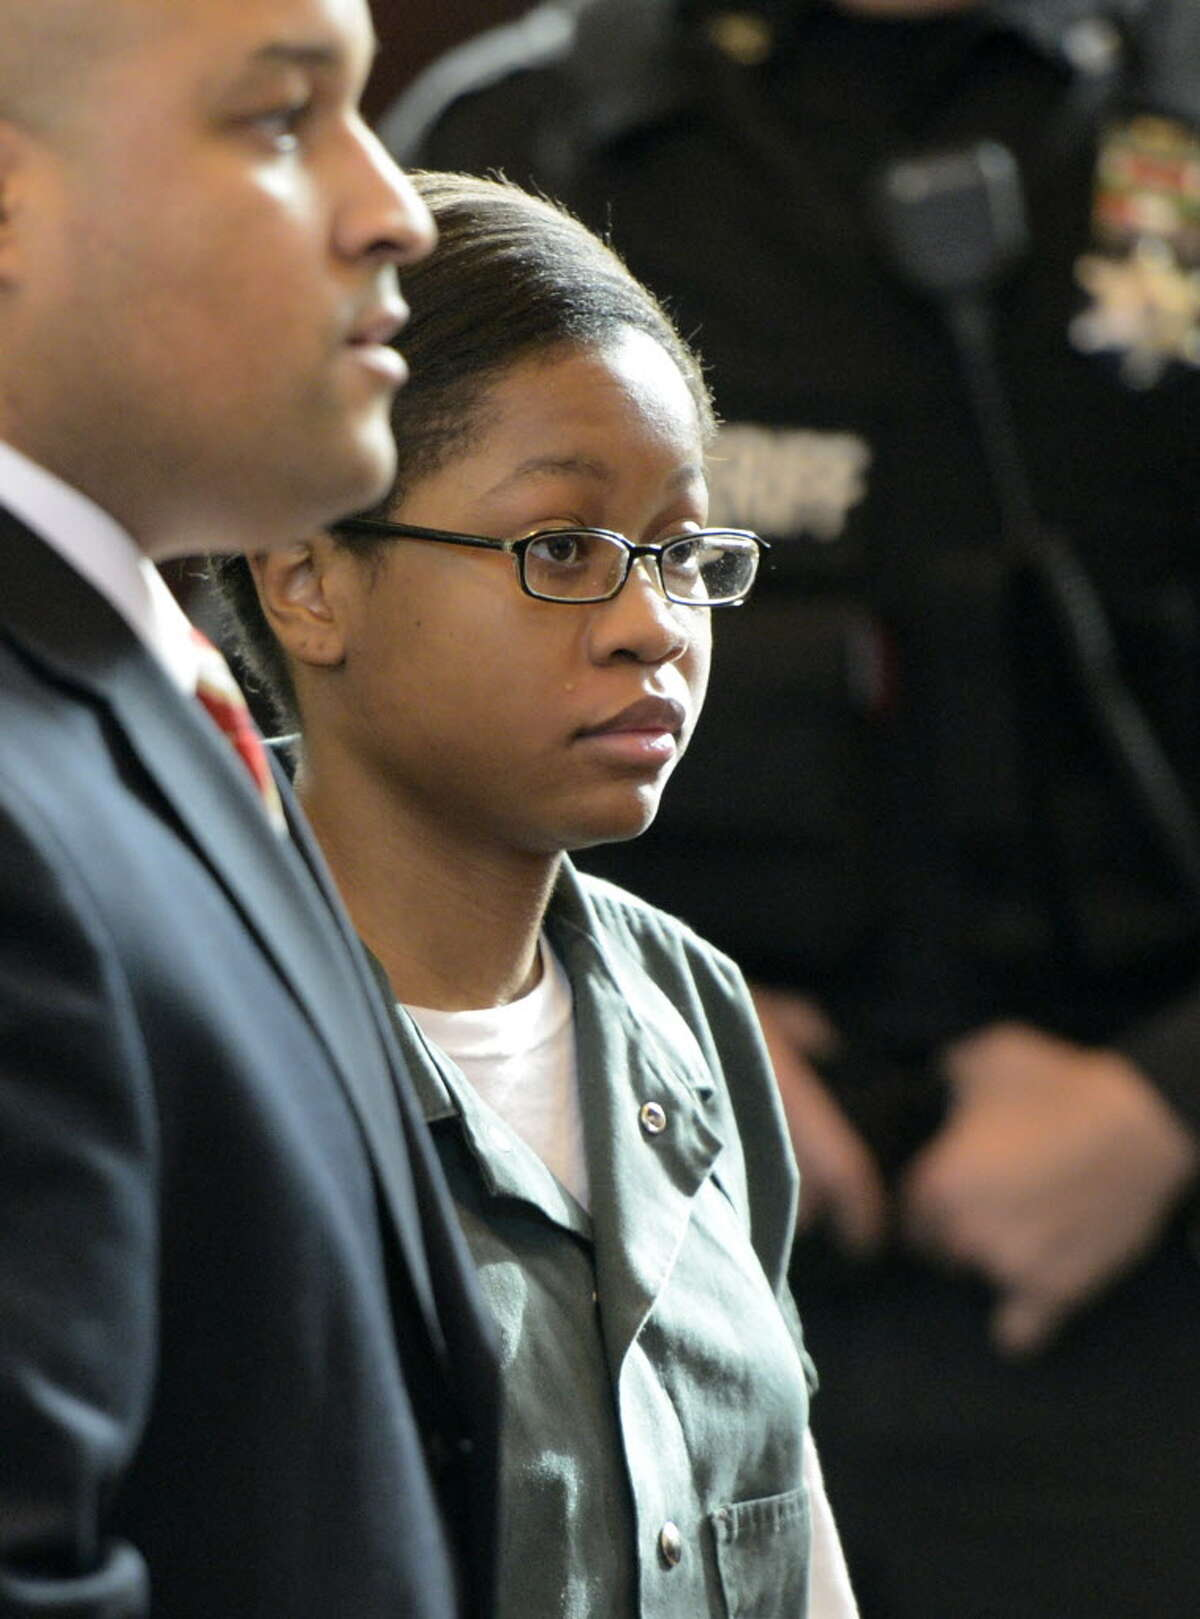 Trinity Copeland, represented by attorney Matthew Smalls, left, is arraigned in front of Judge Andrew Ceresia at the Rensselaer County Courthouse in Troy, N.Y. Dec. 20, 2012. (Skip Dickstein/Times Union archive))